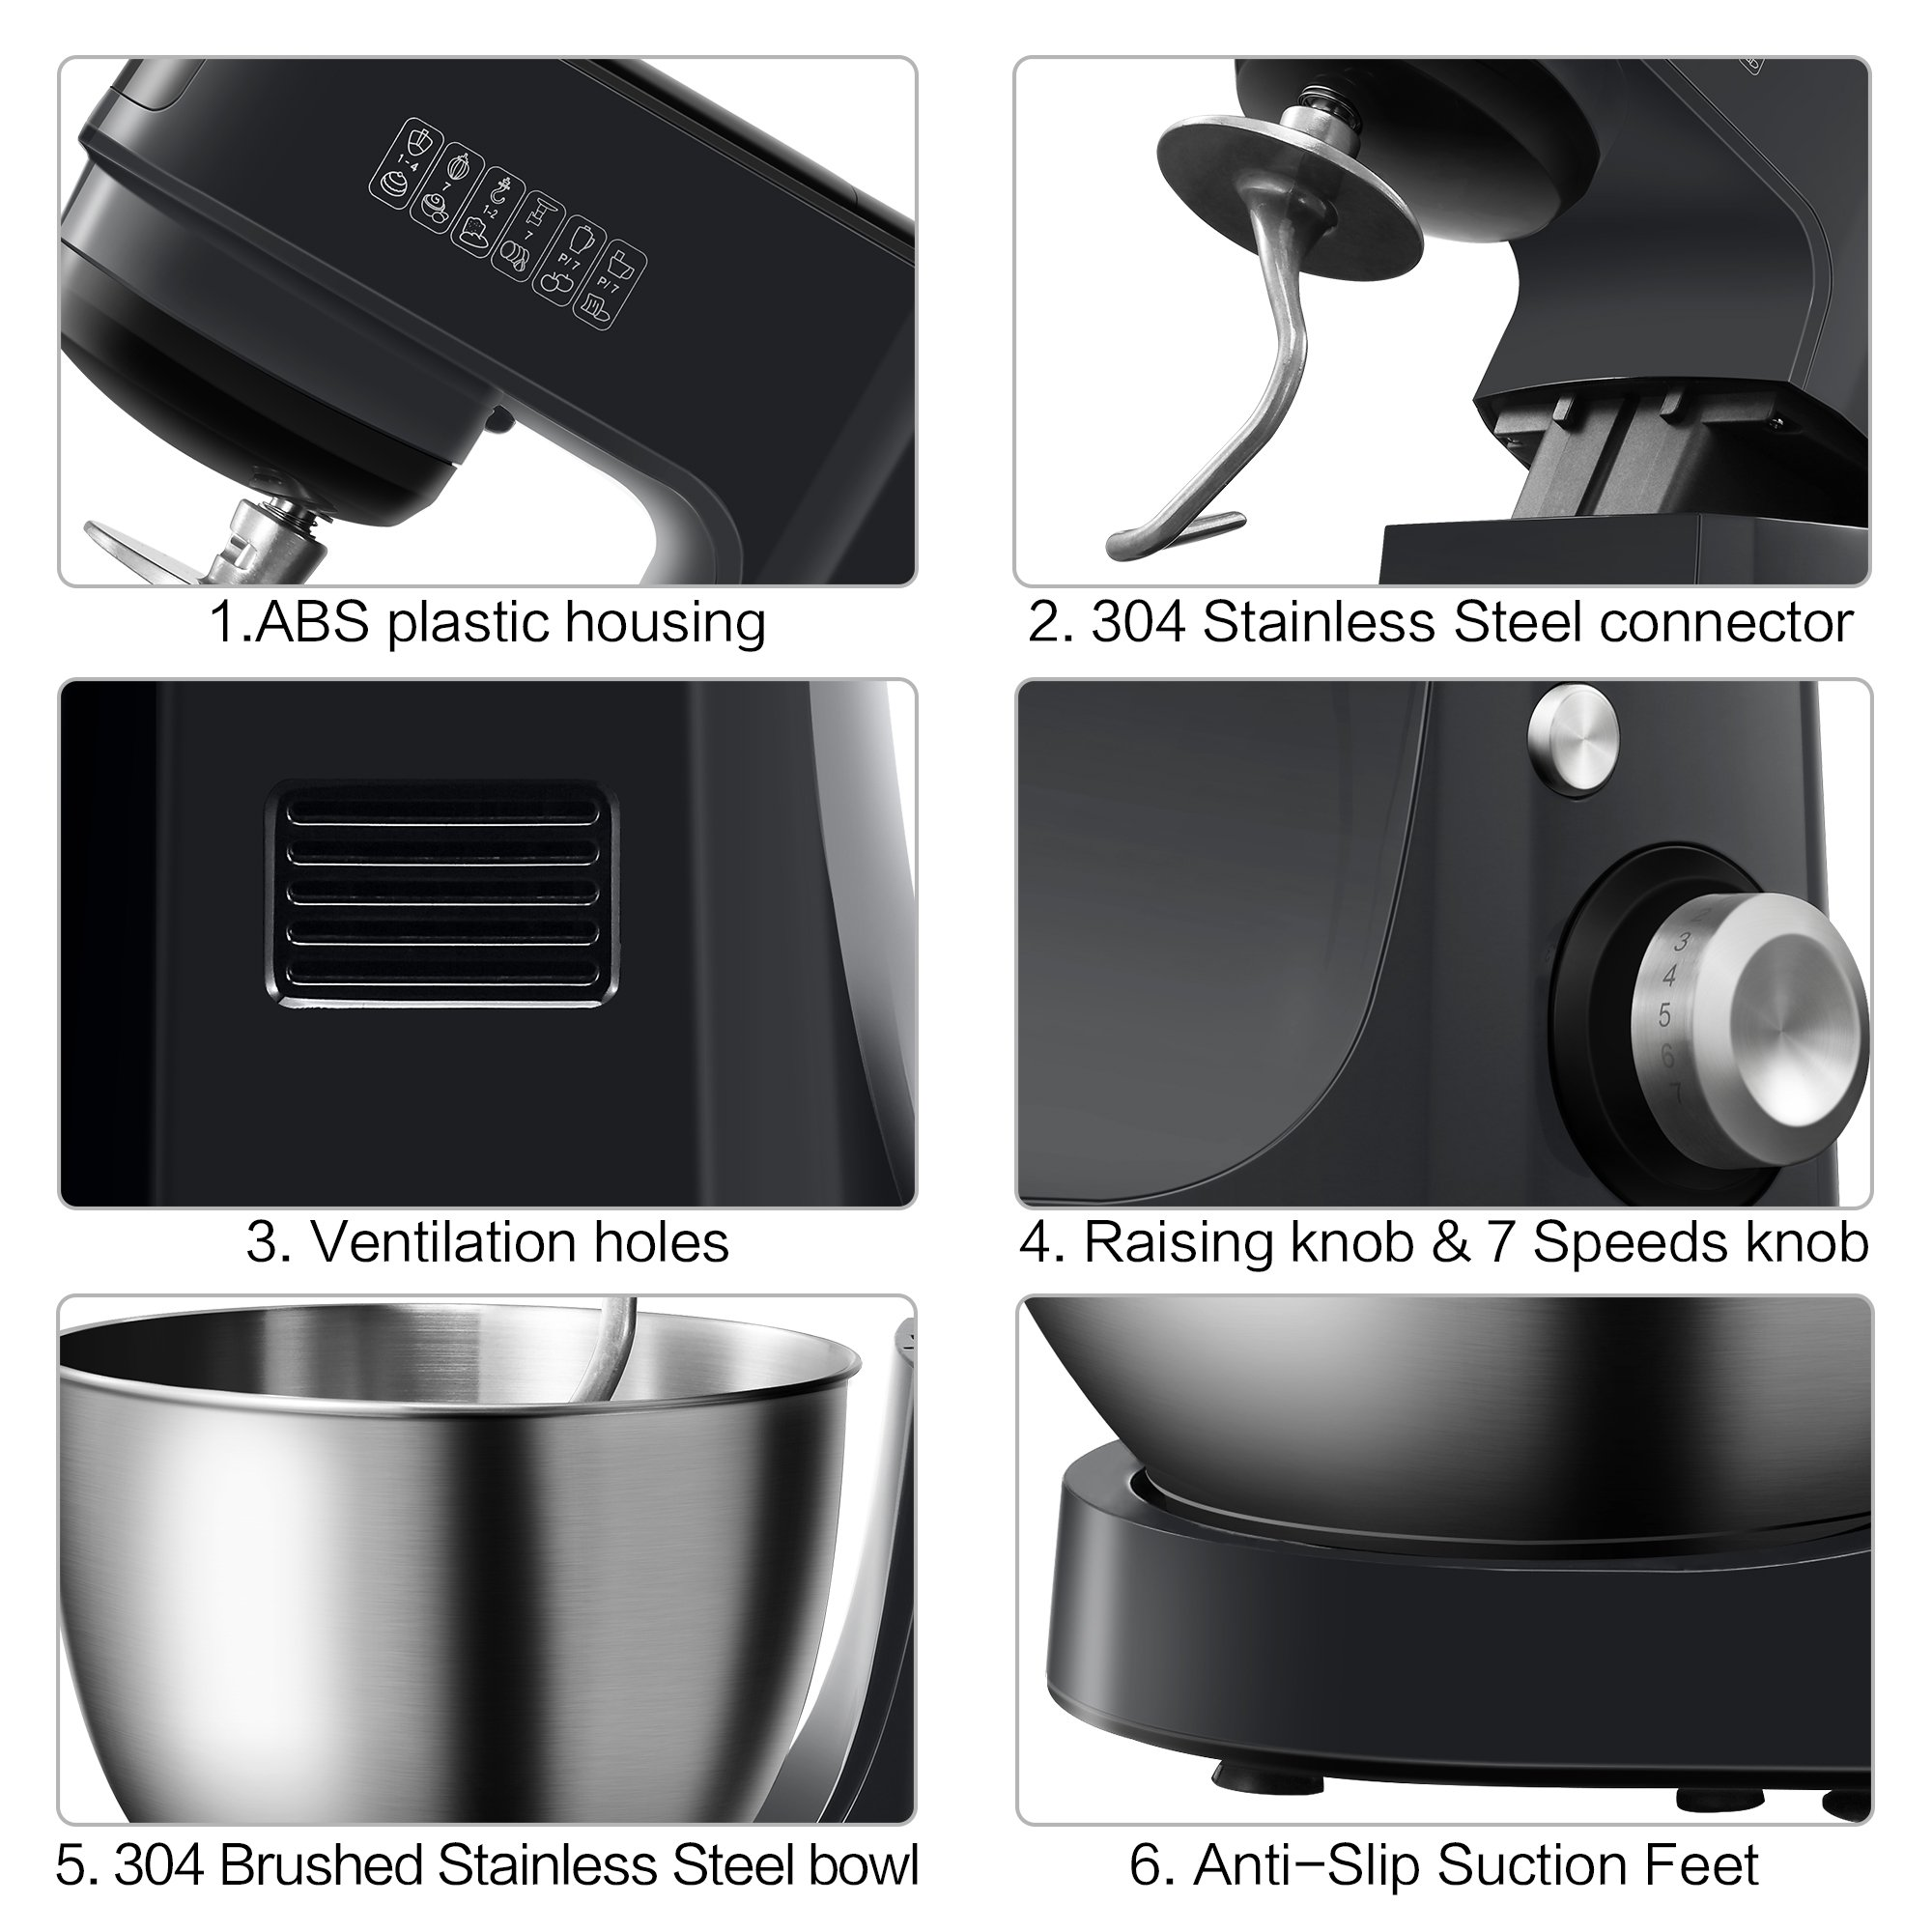 Comfee 4.75Qt 7-in-1 Multi Functions Tilt-Head ABS housing Stand Mixer with SUS Mixing Bowl. 4 Outlets with 7 Speeds & Pulse Control and 15 Minutes Timer Planetary Mixer ¡ by COMFEE' (Image #5)